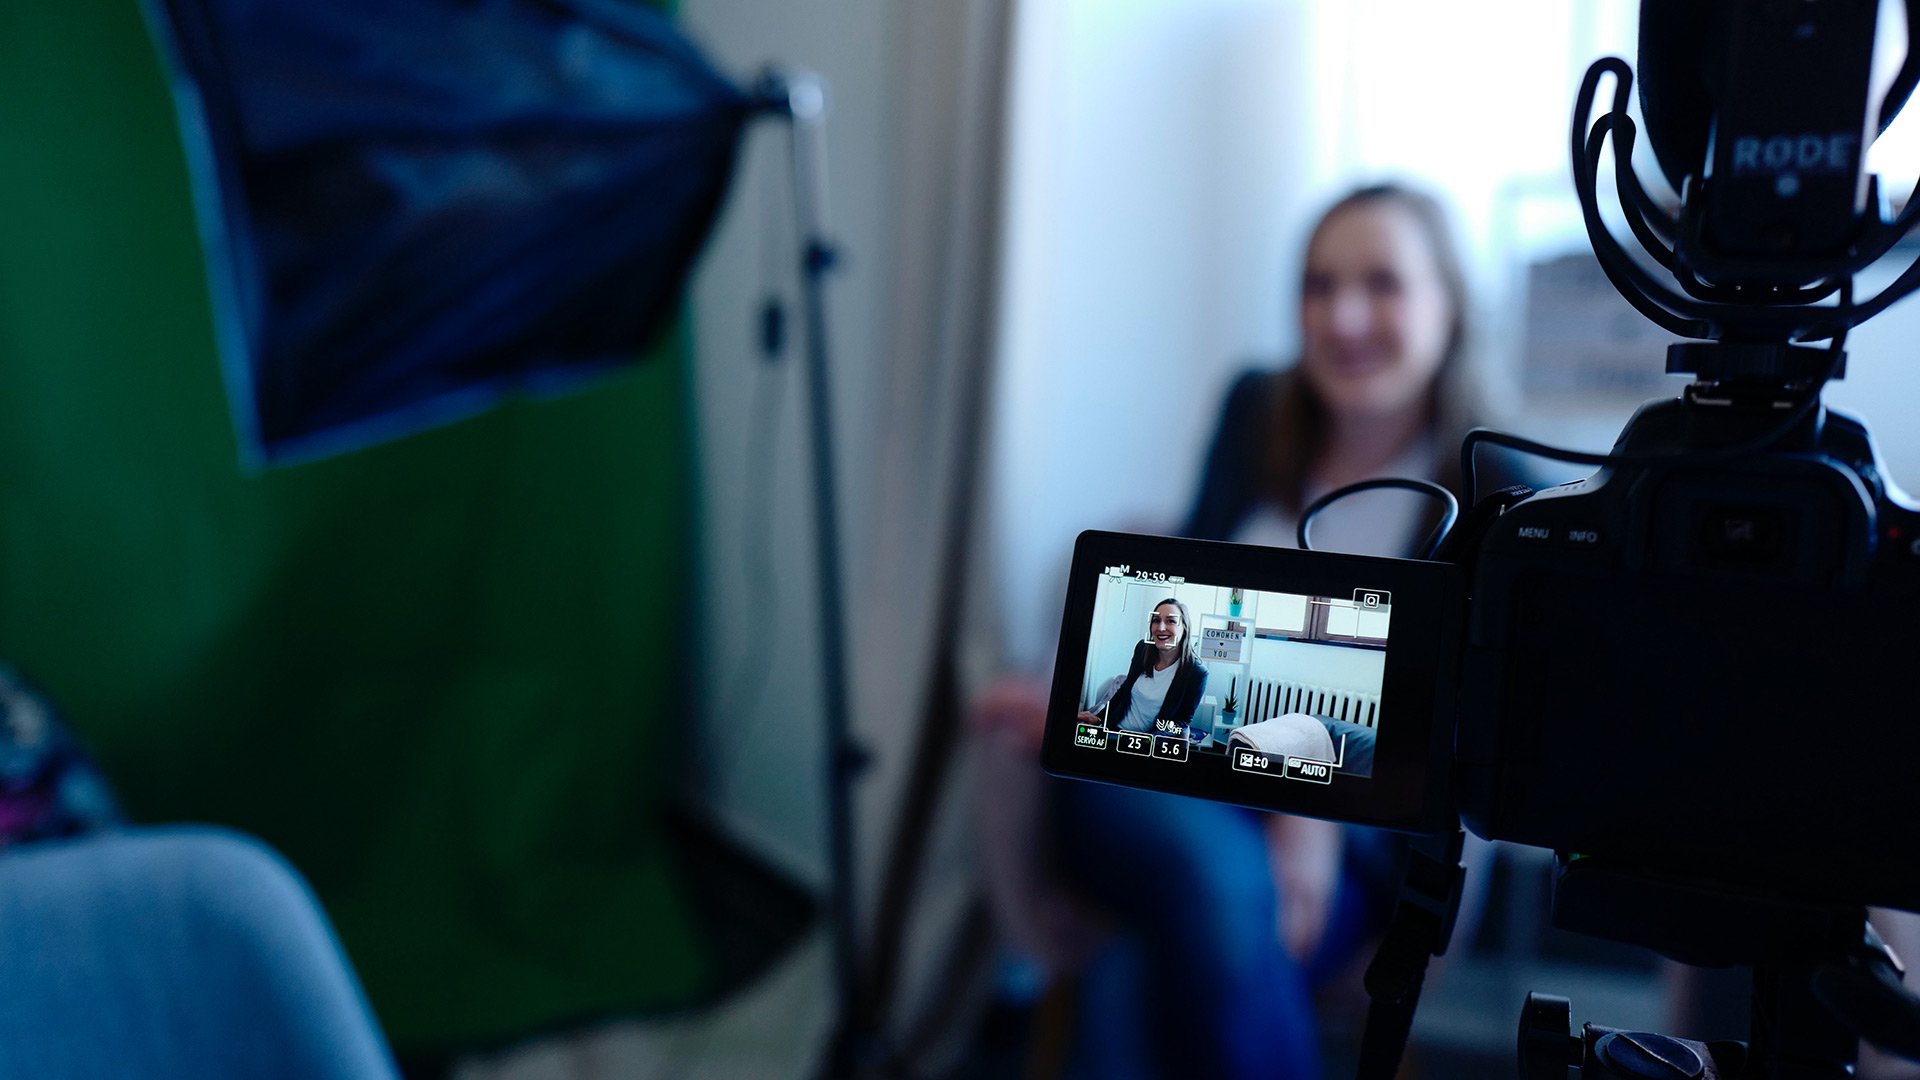 Picture of a woman being filmed from behind the video camera and monitor